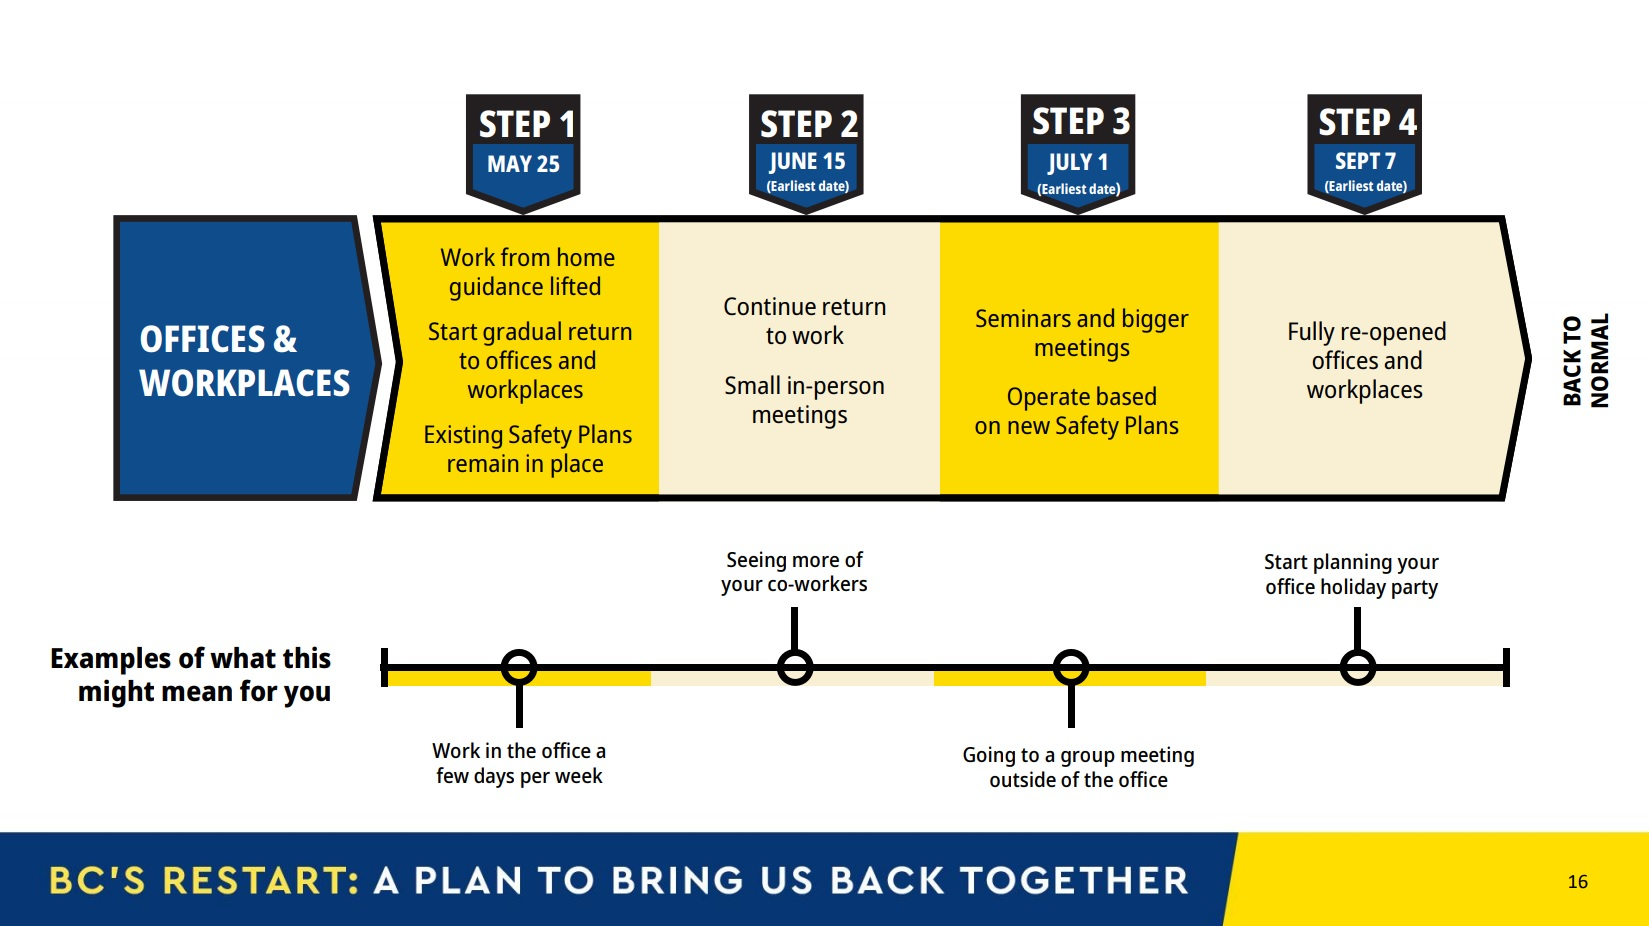 B.C. restart plan - offices and workplaces